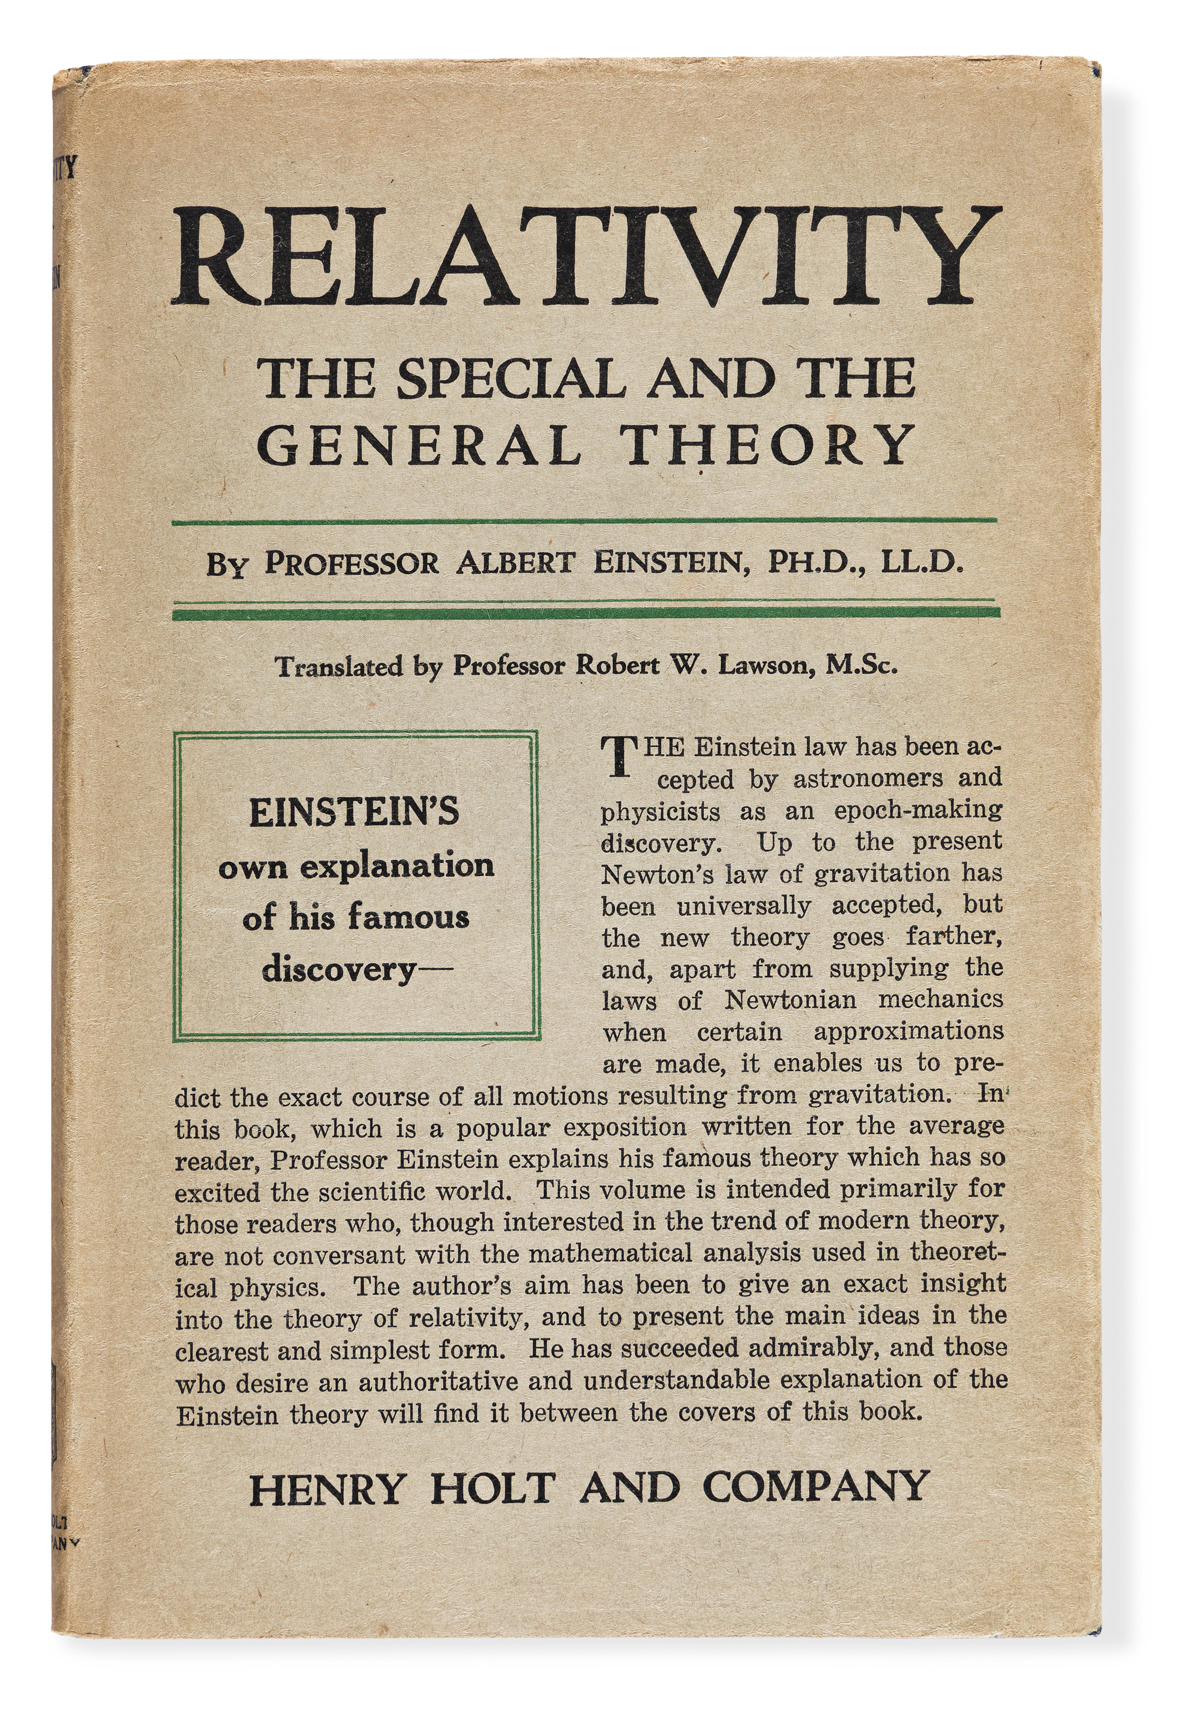 Einstein, Albert (1879-1955) Relativity. The Special and General Theory.